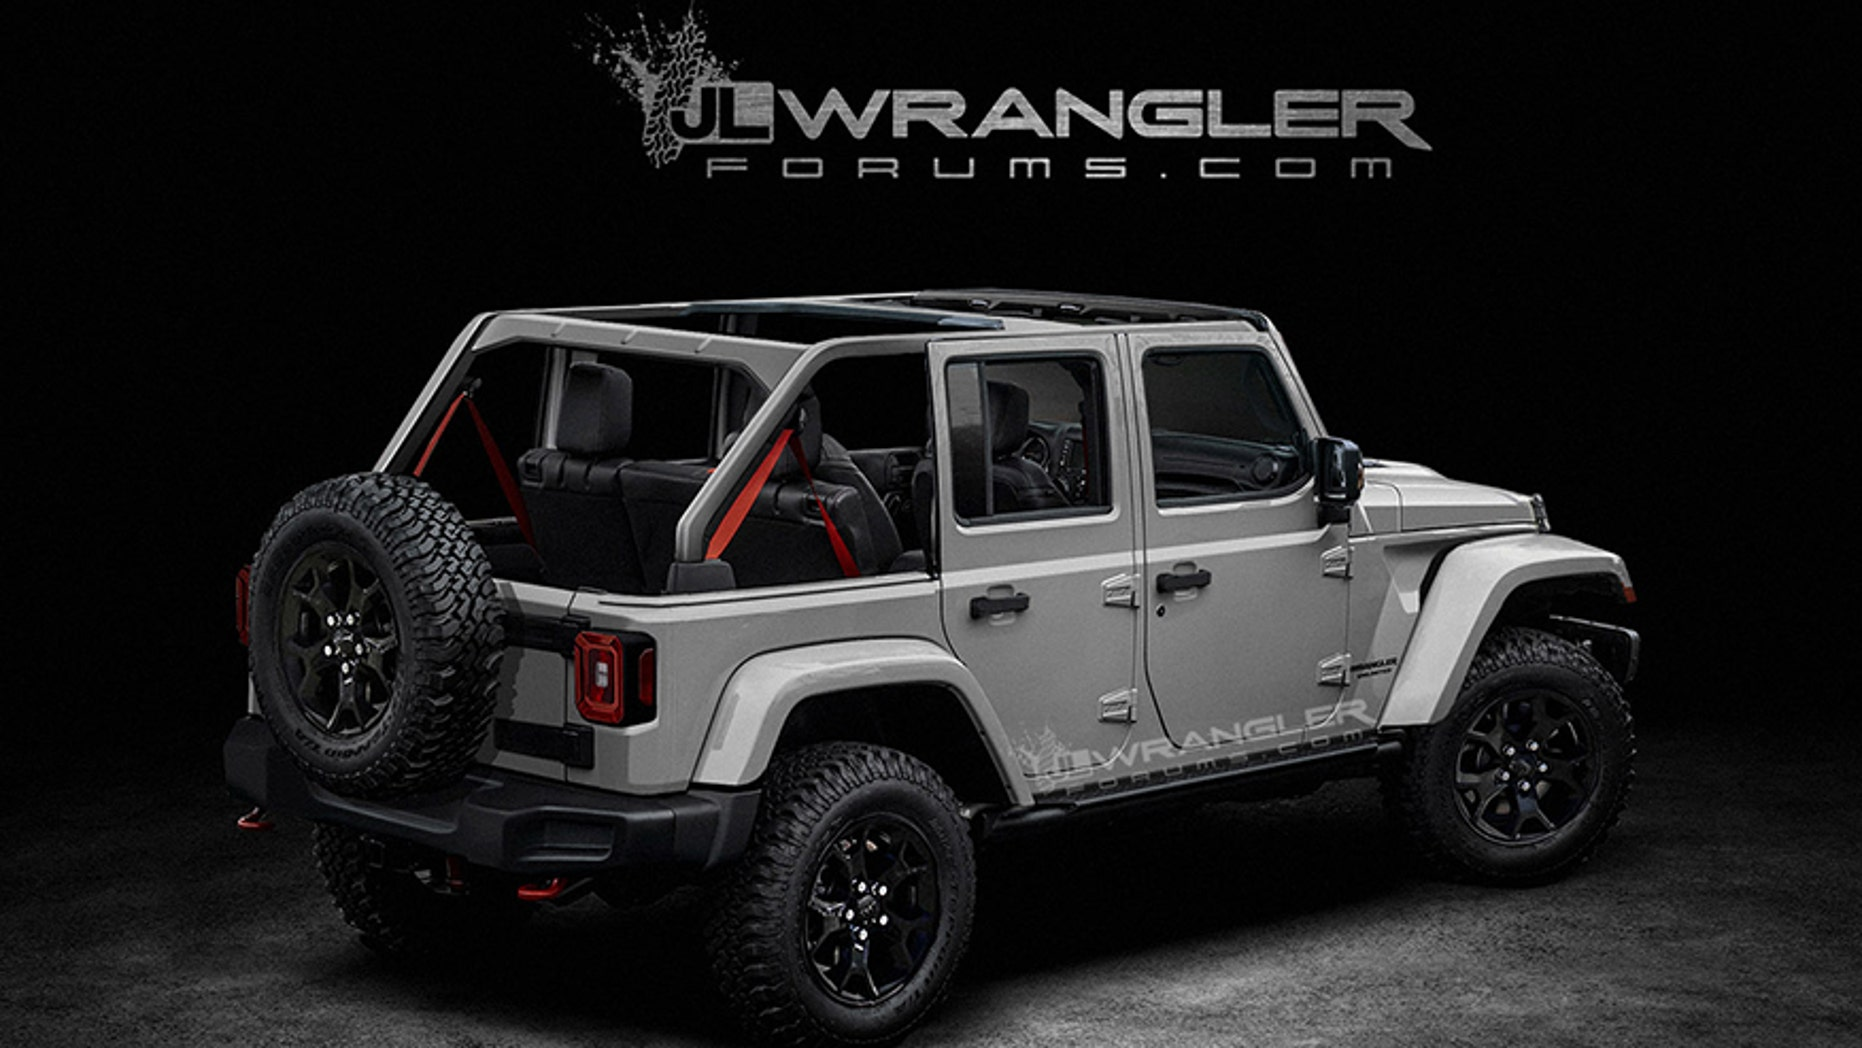 Speculative rendering of the 2019 Jeep Wrangler